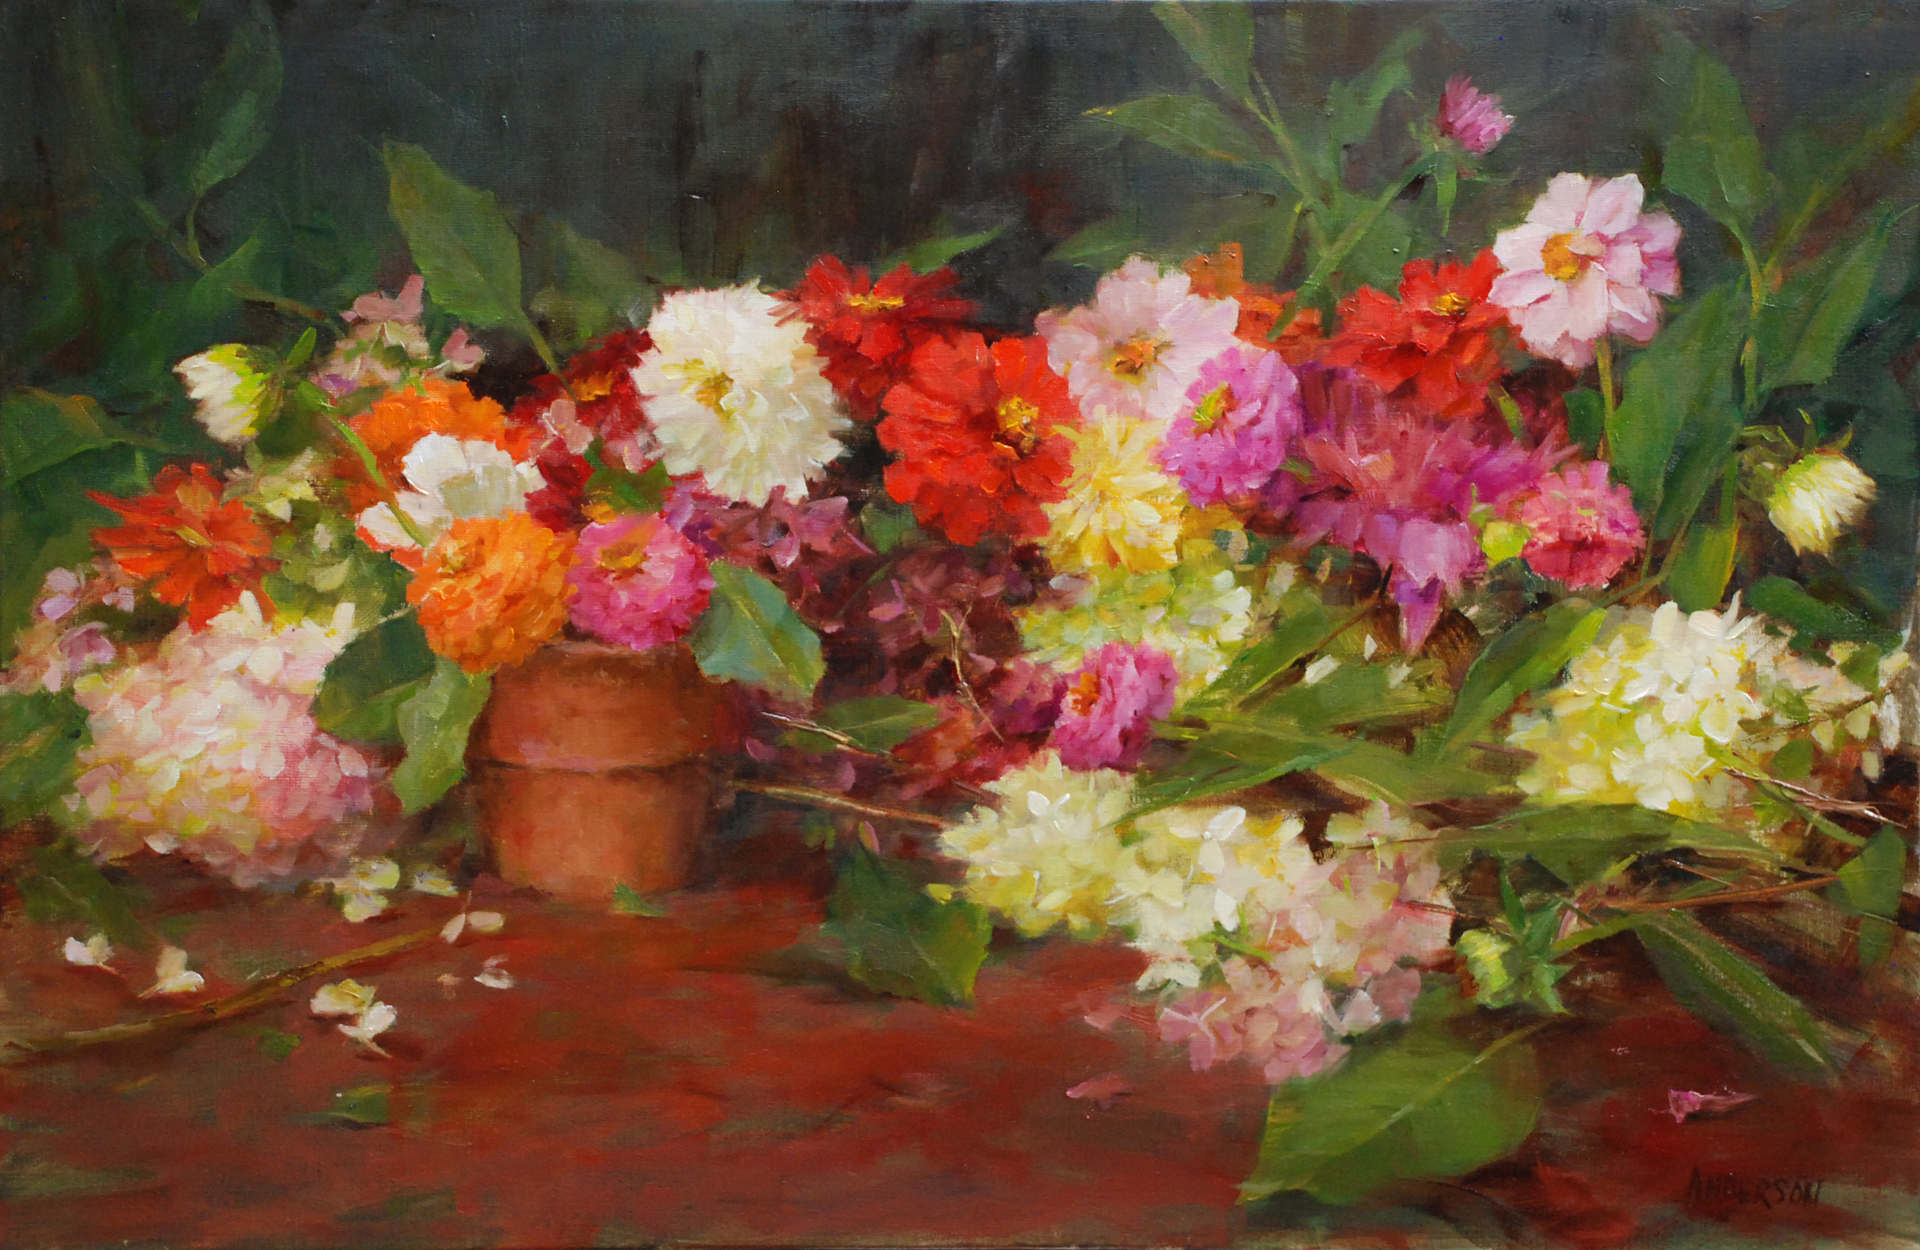 Hydrangeas with Zinnias and Dahlias by Kathy Anderson